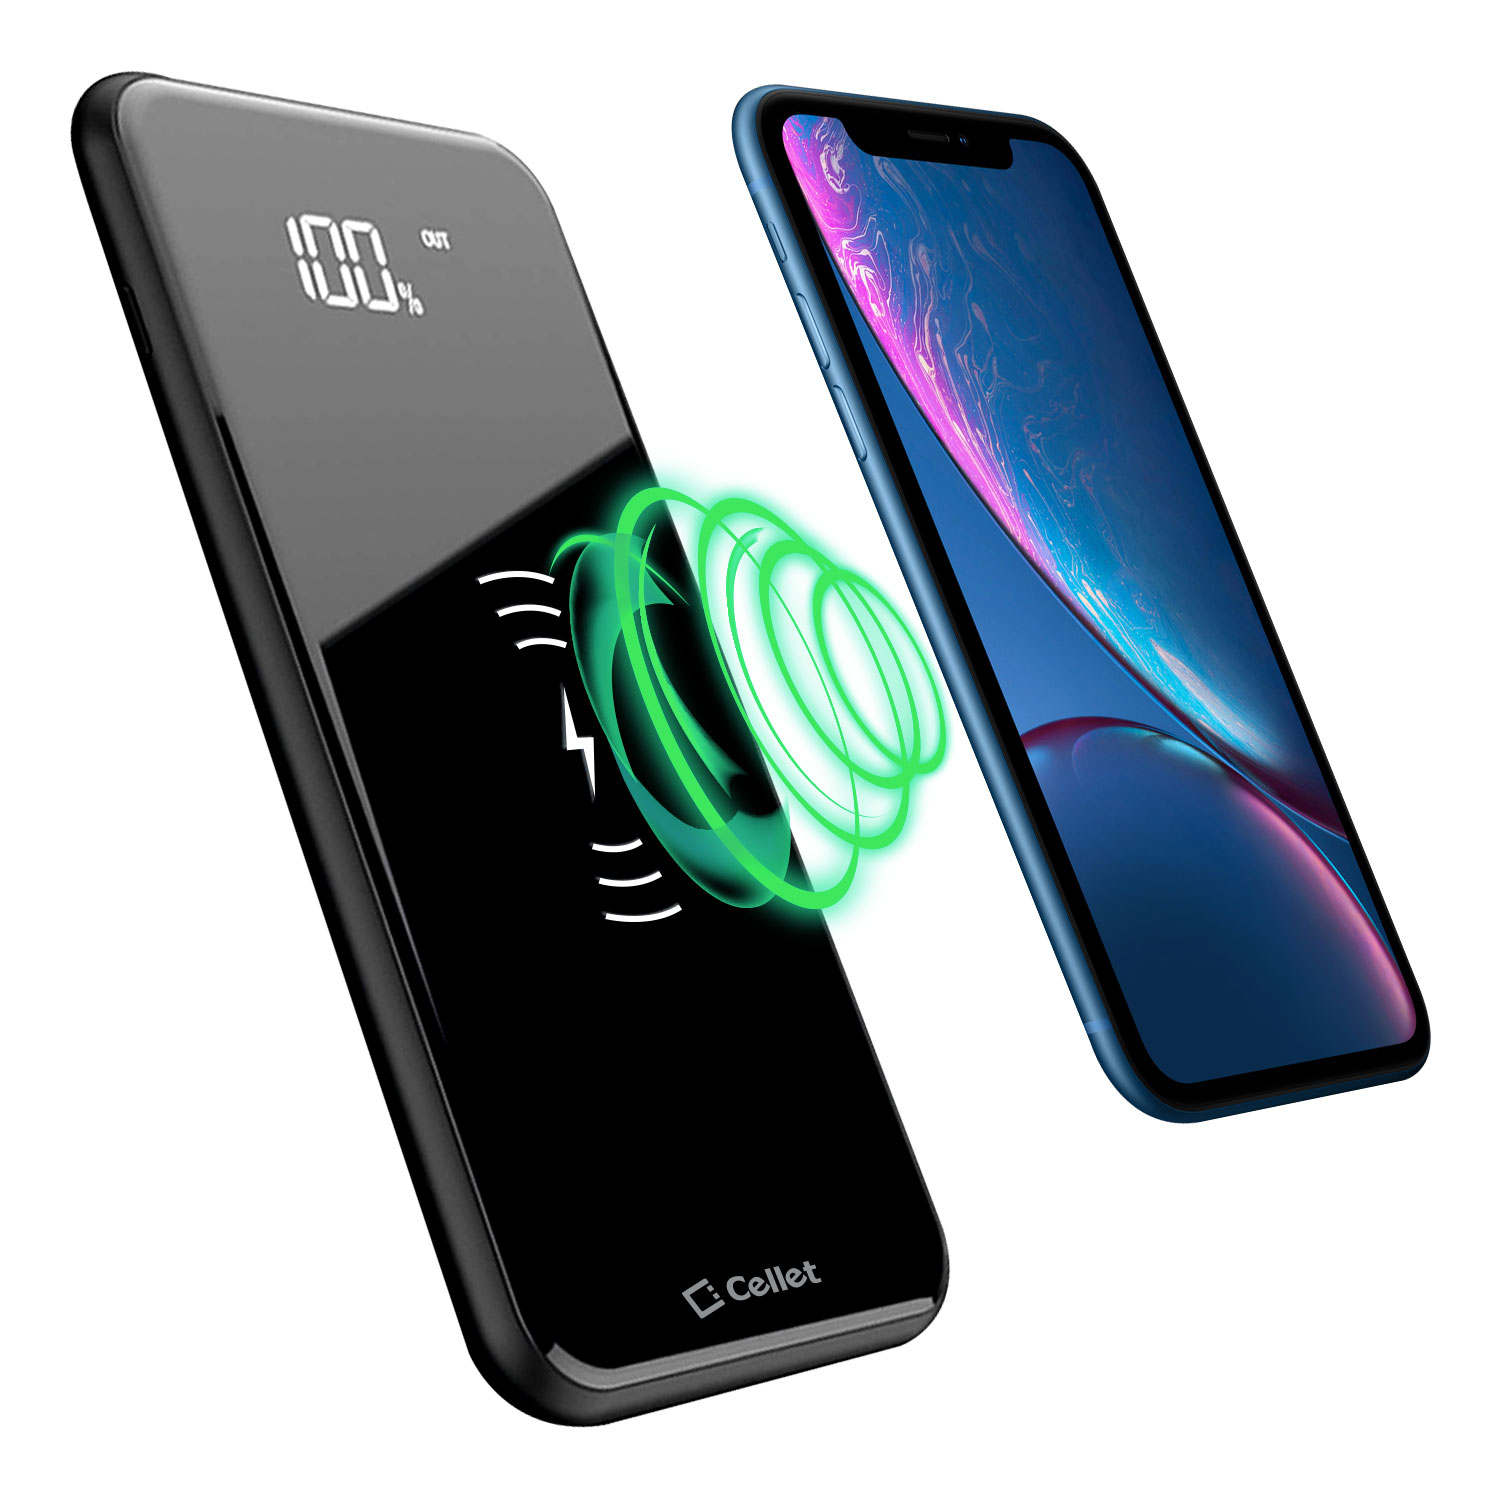 Google Pixel 3 XL Portable Wireless Charger Power Bank Black 10,000mAh